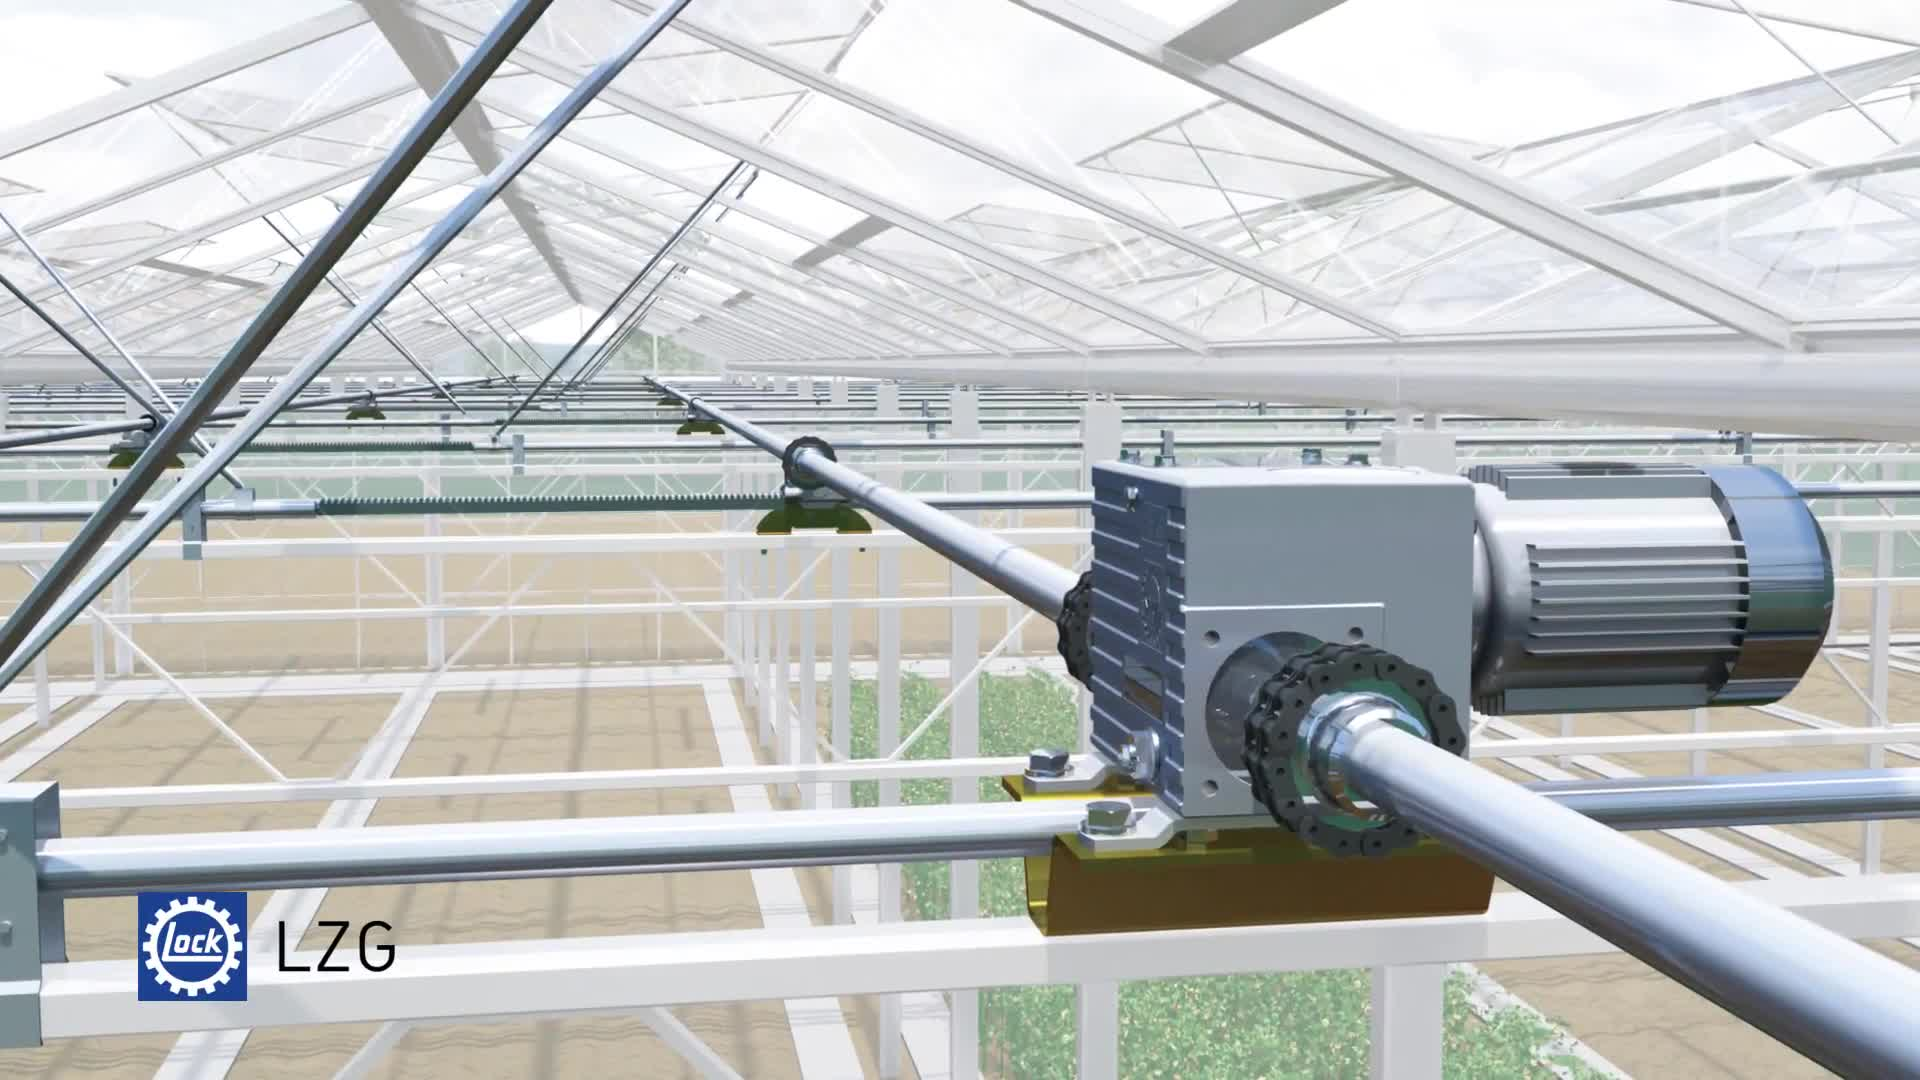 Lock Antriebstechnik ⁄⁄ lockdrives - Drive solutions for Horticulture.mp4